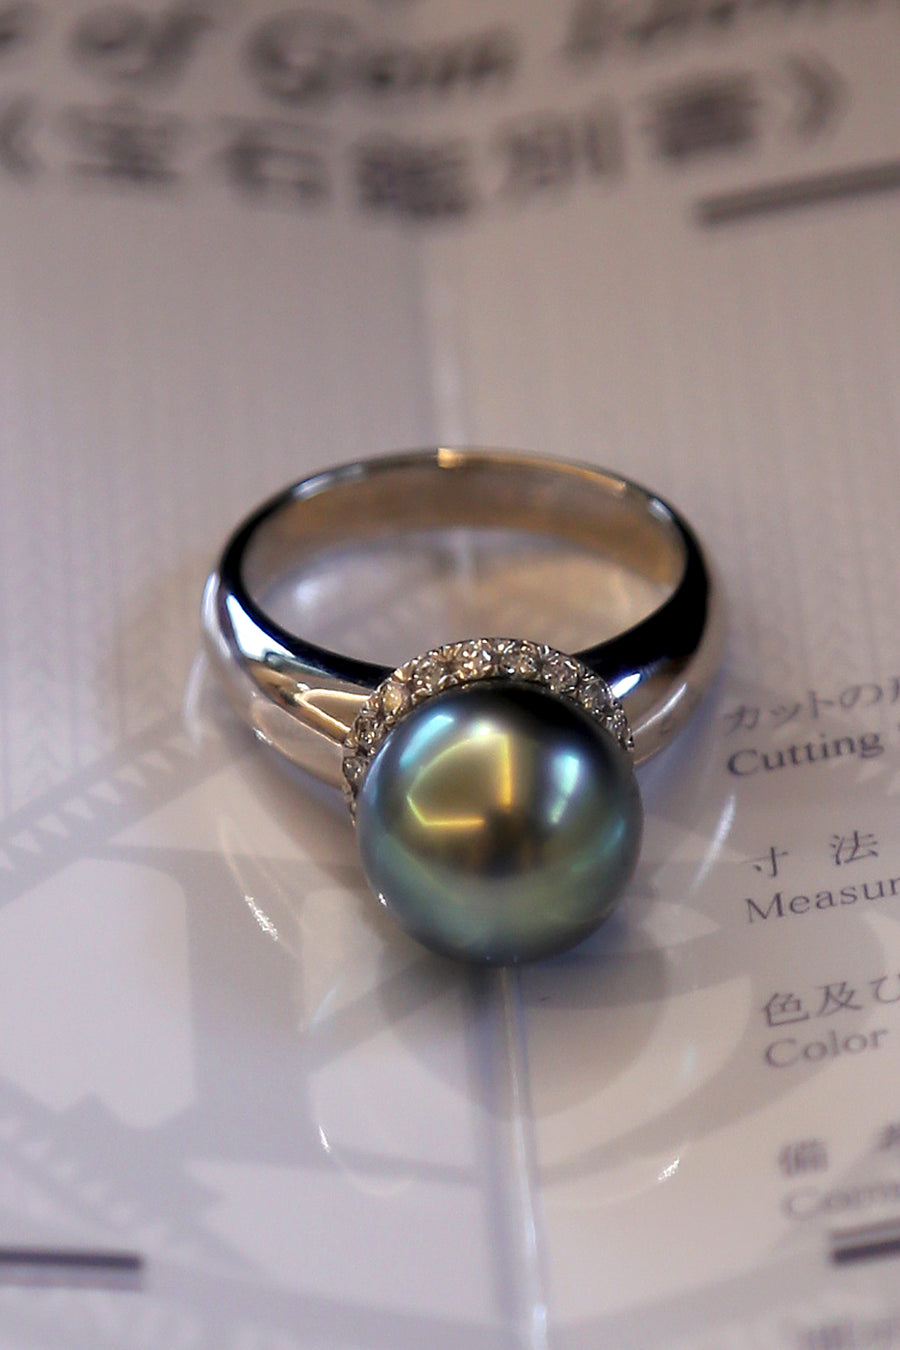 Pt900 Platinum with Diamond Tahiti Black Pearl Ring Pt900, d0.23ct,11.1mm,13.5g,#15